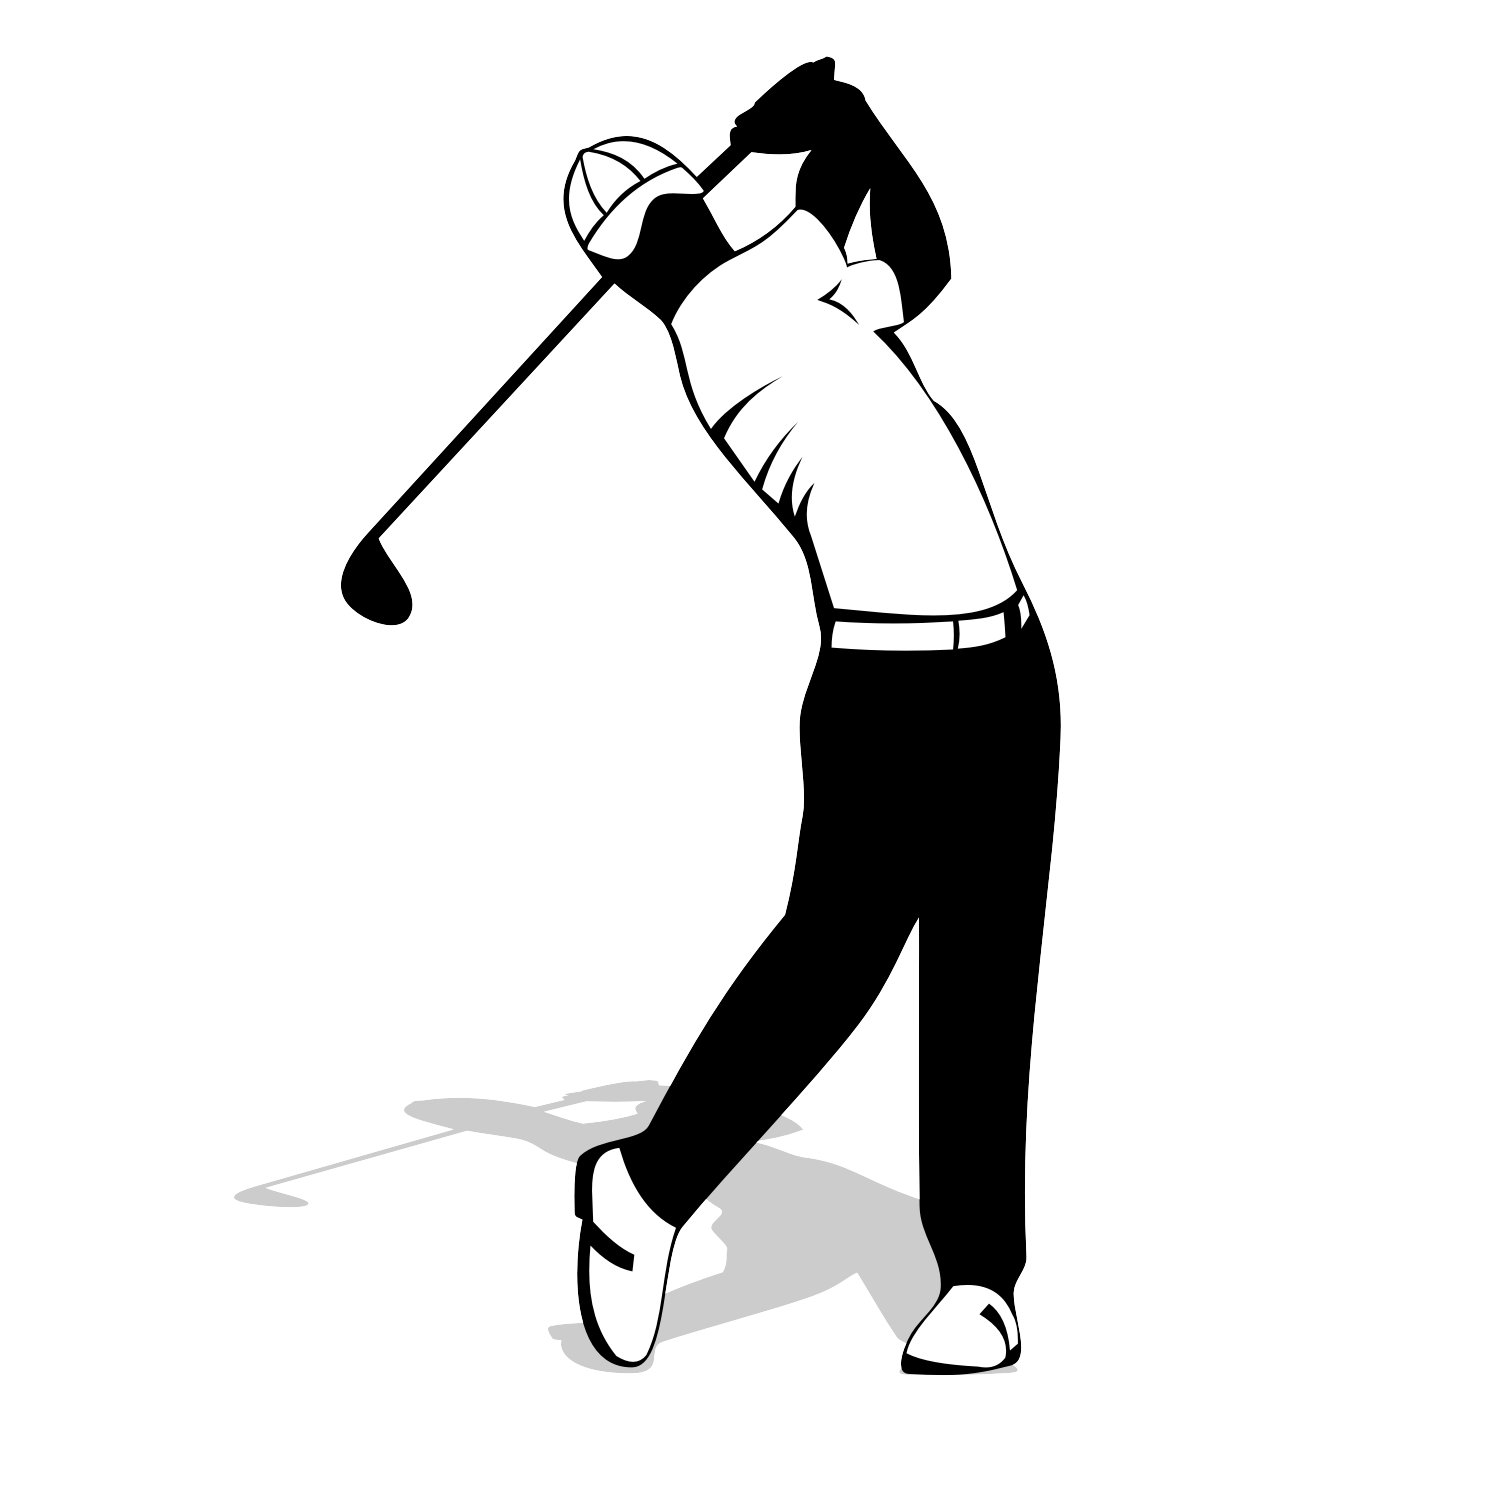 Golf player silhouette. Free vector illustration